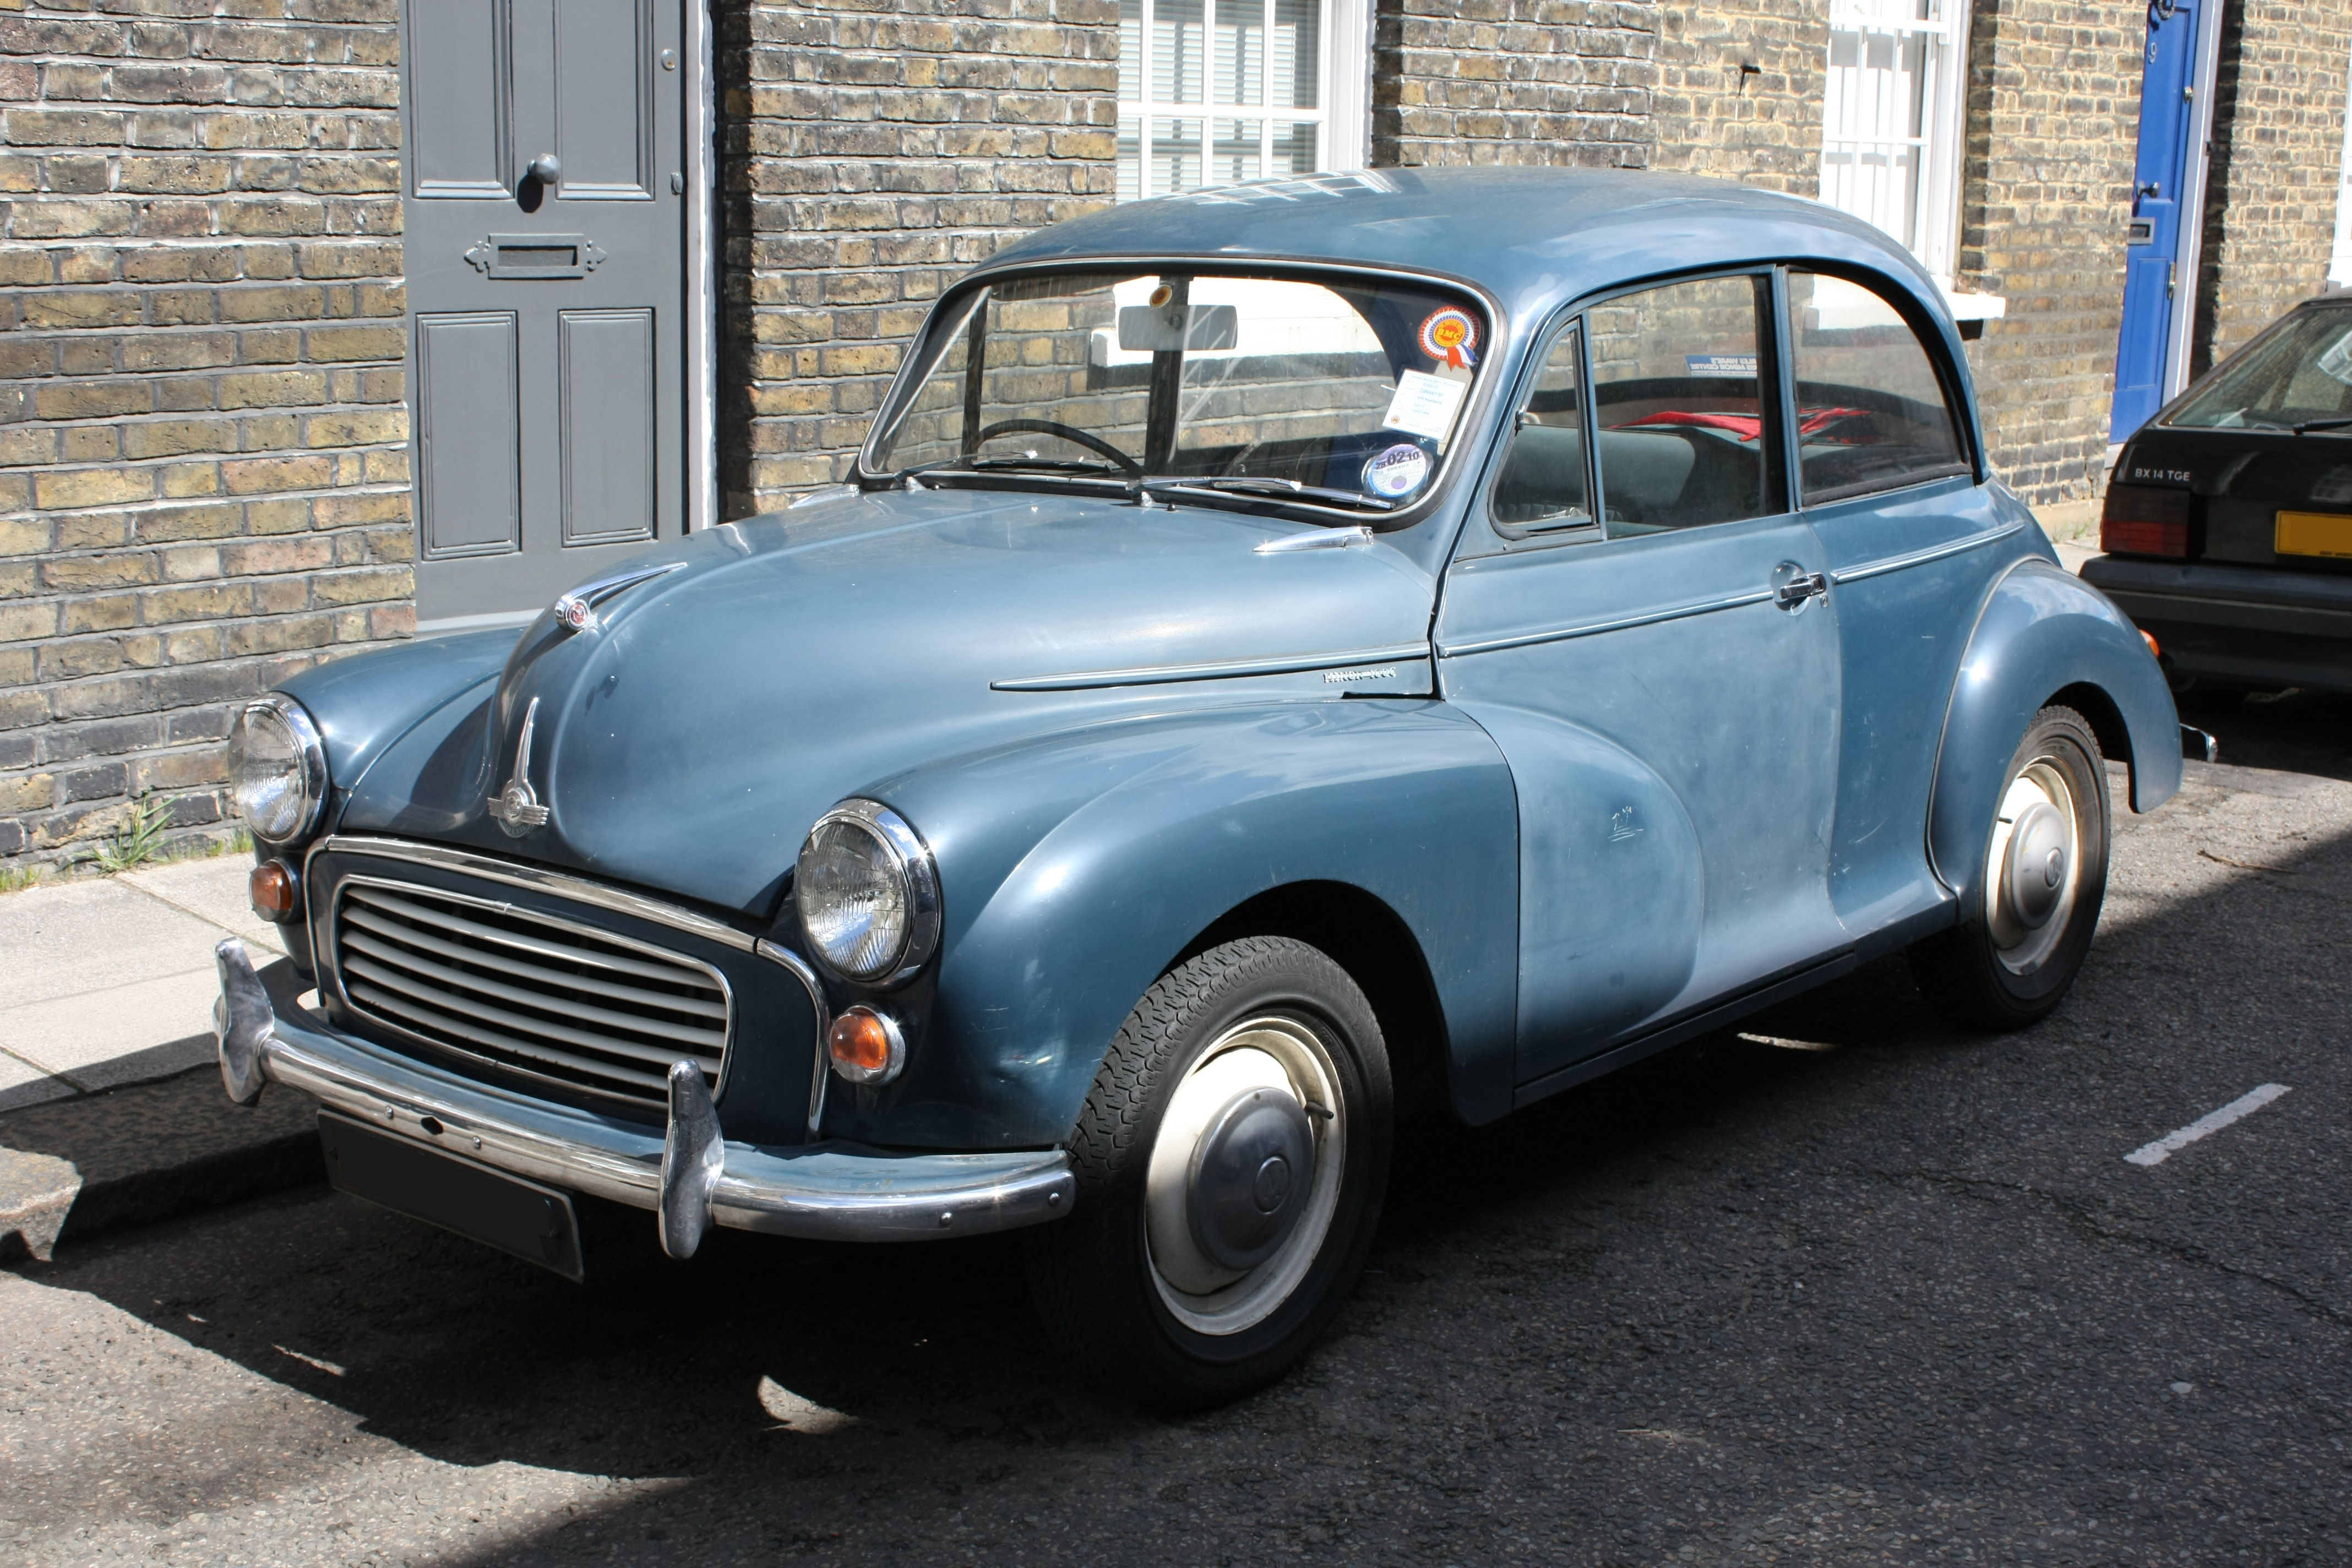 File:Morris Minor 1000 Front.jpg - Wikimedia Commons